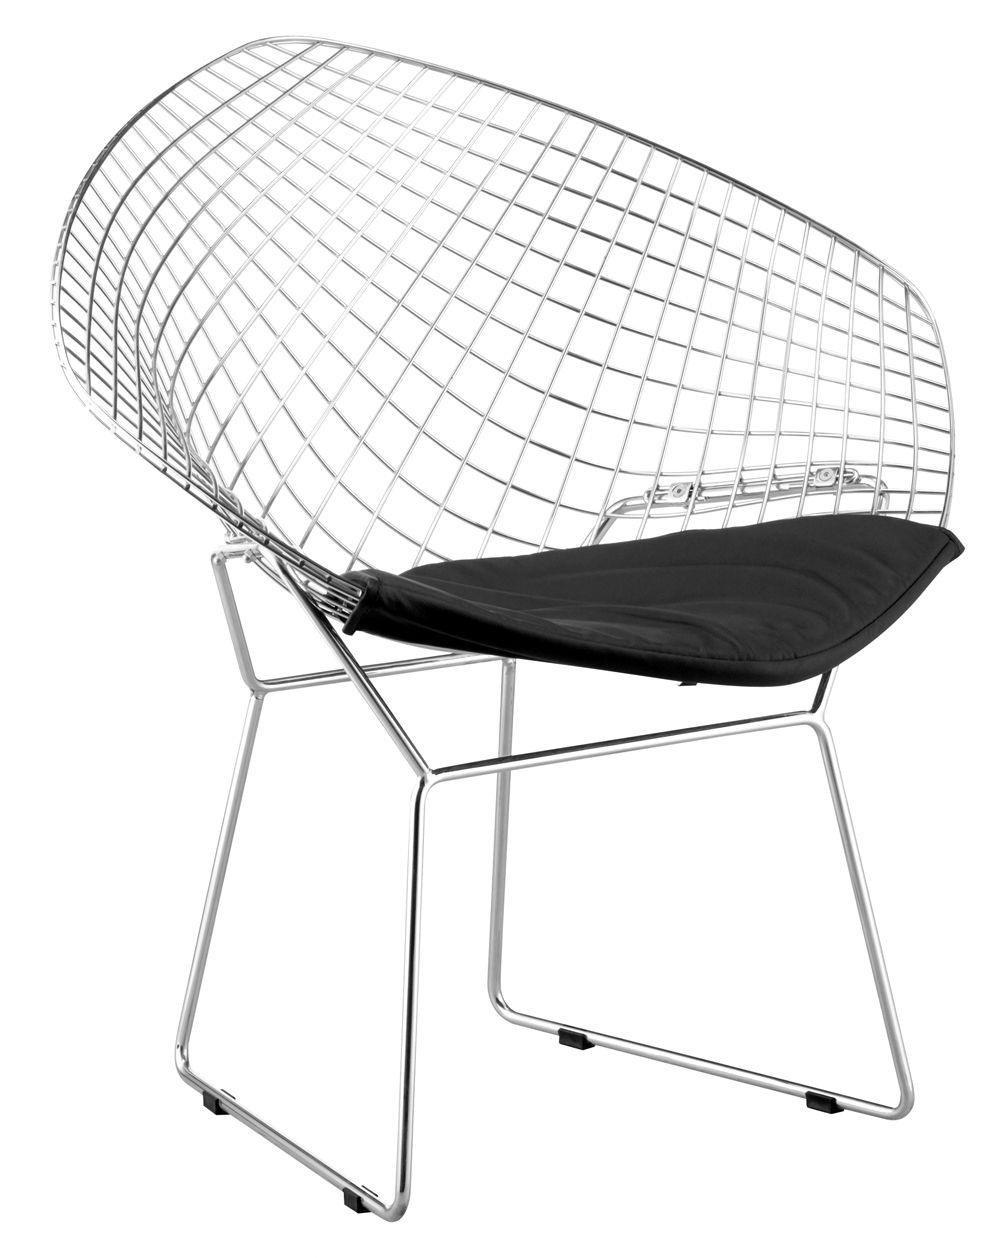 Solid Steel Net Chair In Black Or White With Leatherette